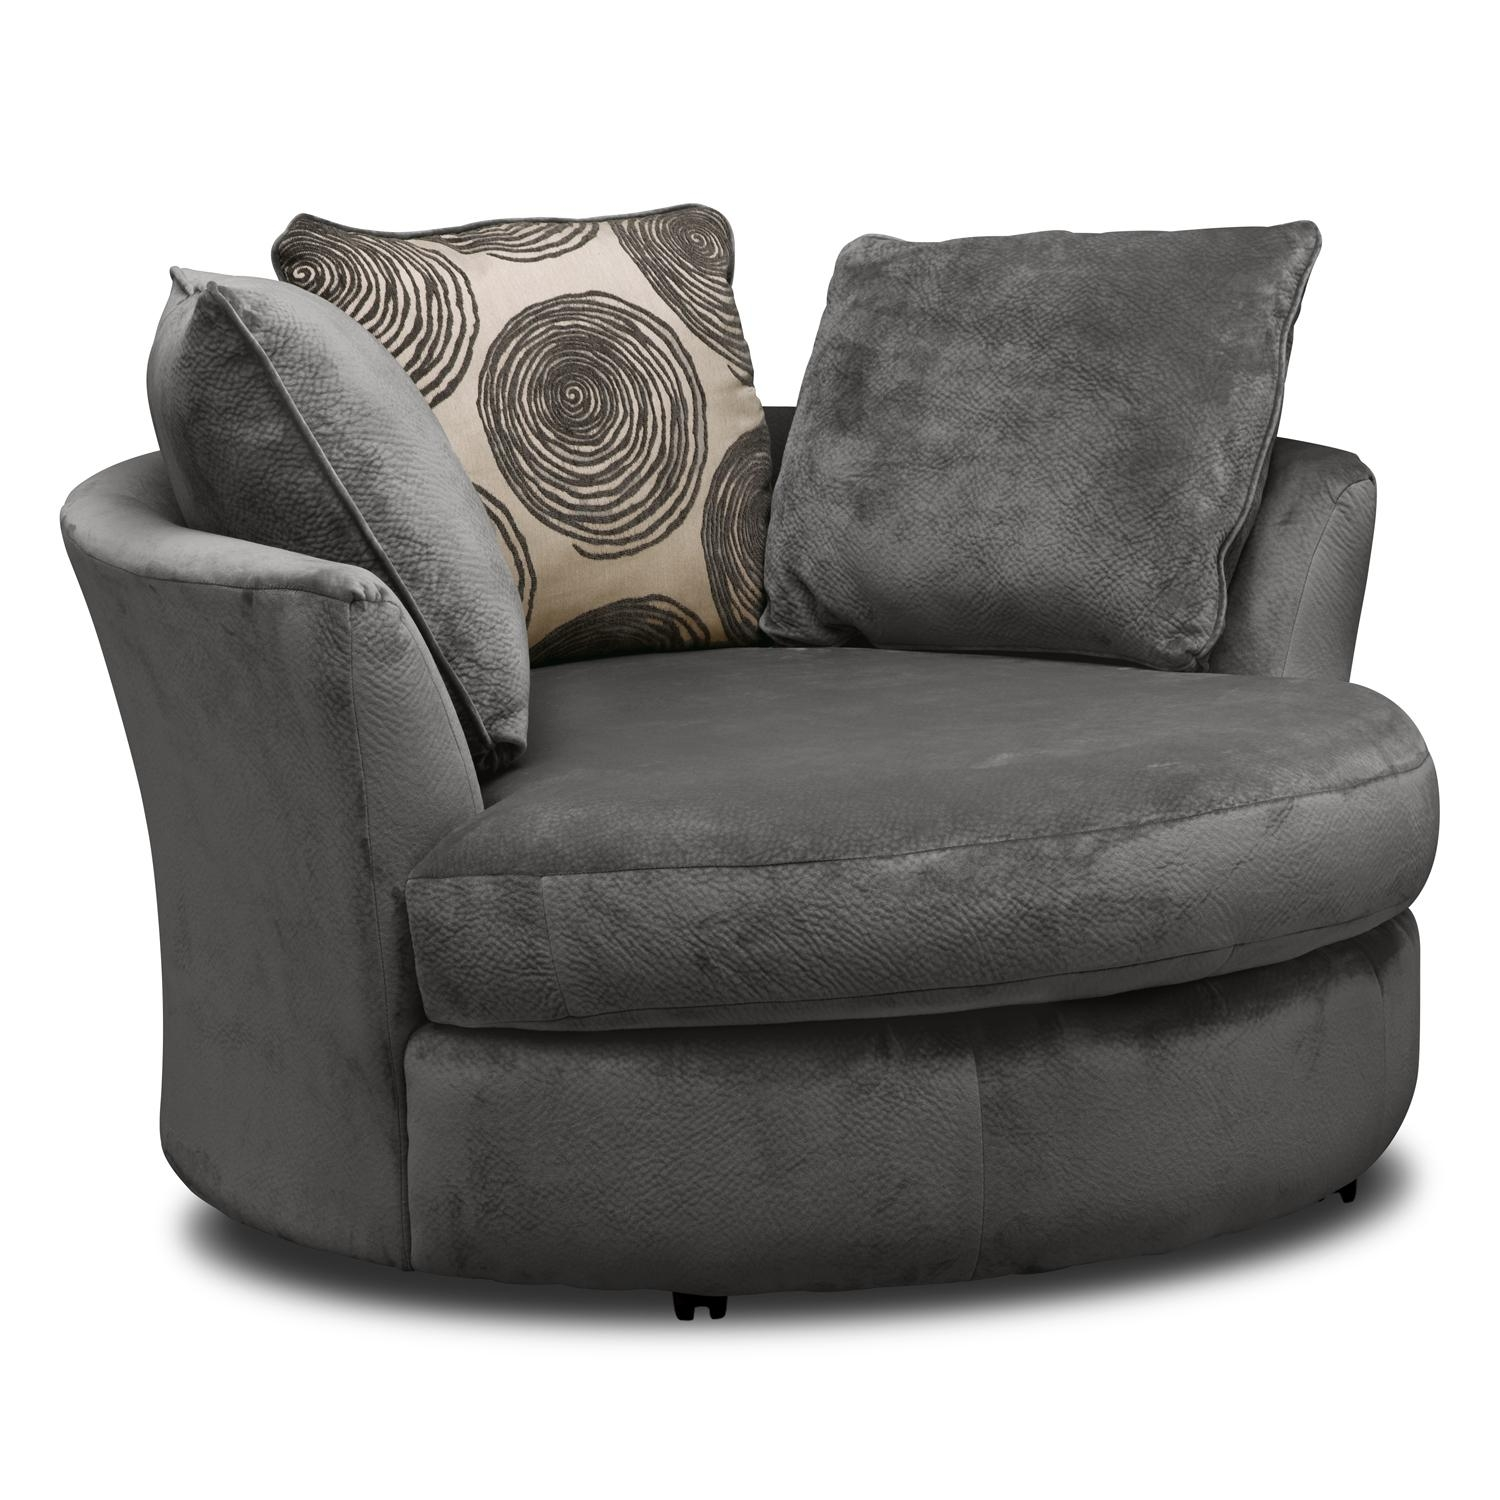 Oversized Circle Chair 20 Ideas Of Large Sofa Chairs Sofa Ideas